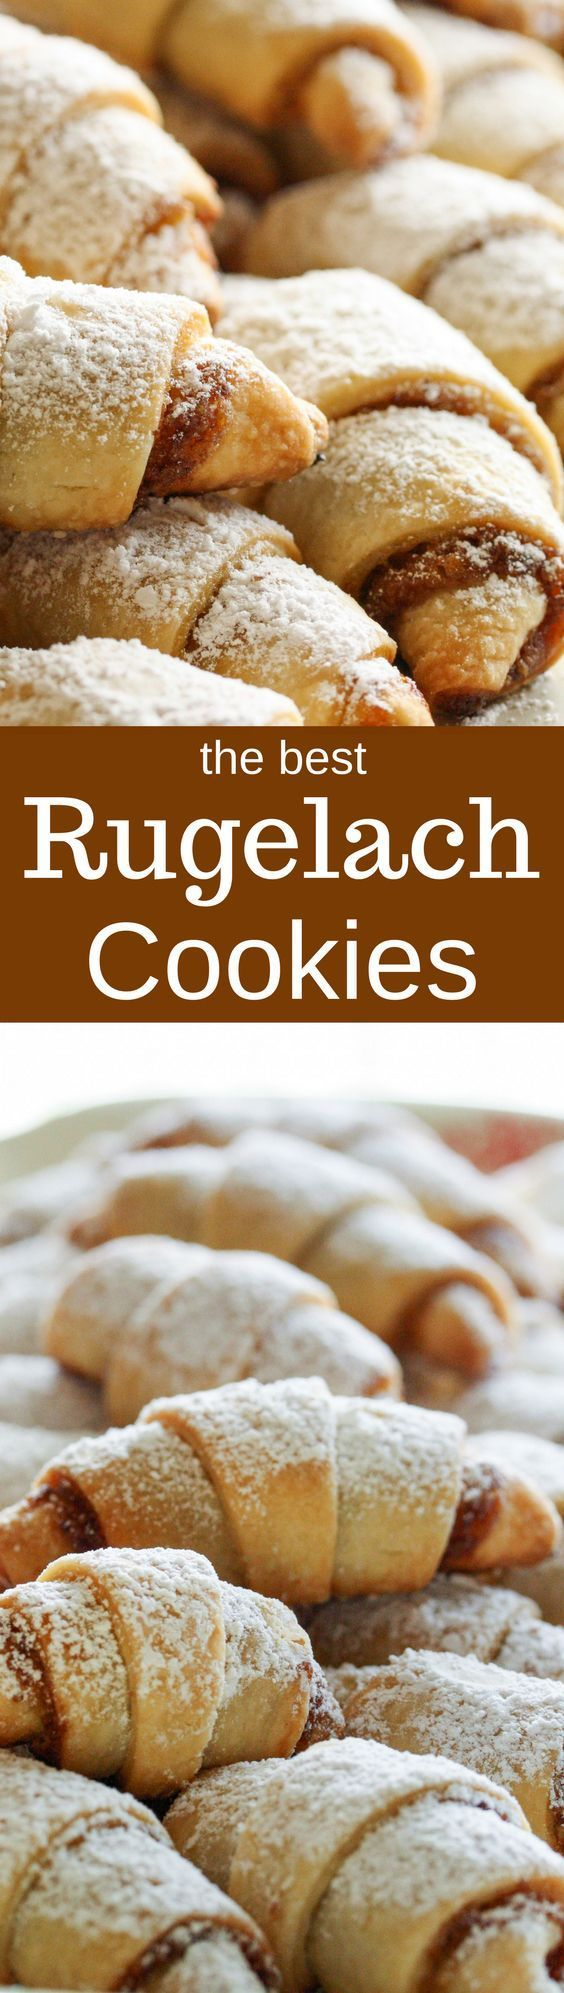 Rugelach Cookies - Cream cheese dough is rolled with sweet fillings such as preserves, nuts, chocolate, and/or raisins then dusted with powdered sugar - a holiday treat | www.savingdessert.com(Chocolate Cream Filling)